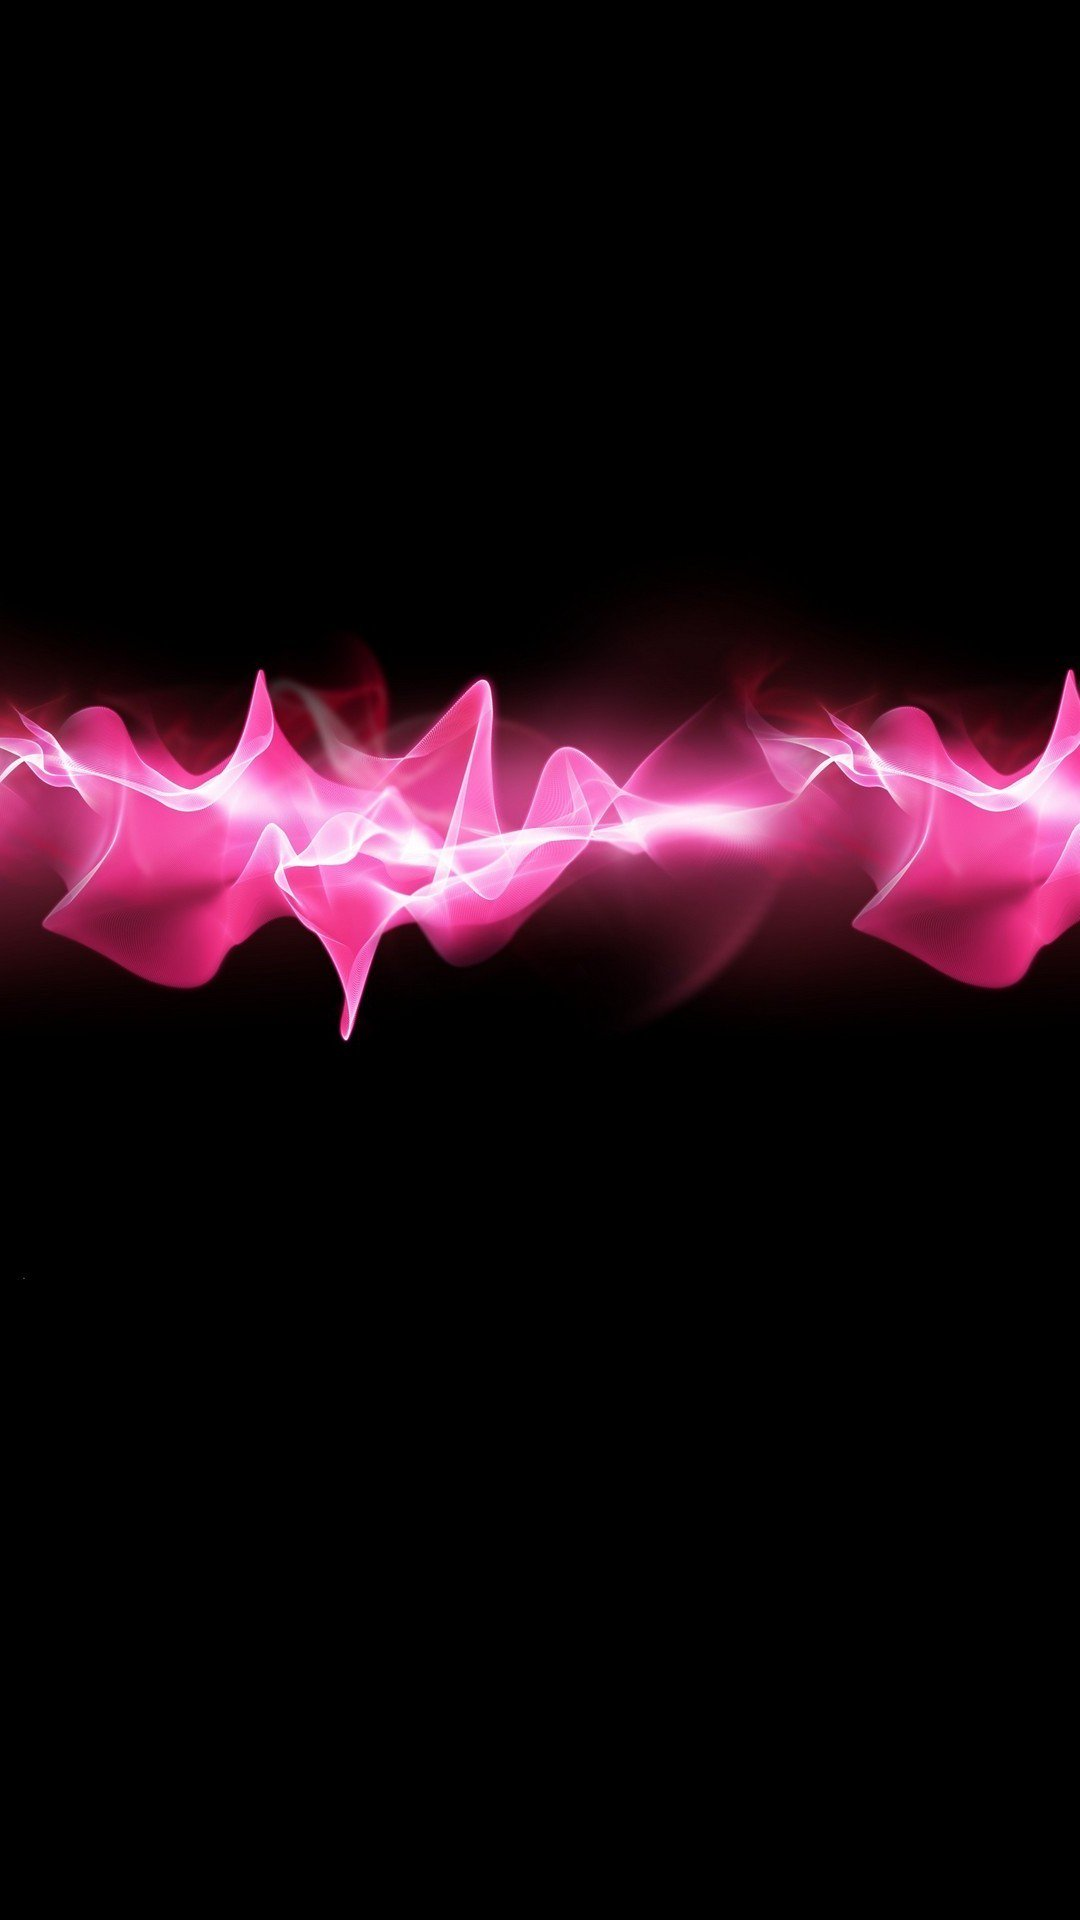 Light Pink Wallpaper For Android https://t.co/gQEzVvFGIk #PinkWallpapers #1080 #1920 #Android #For https://t.co/DgclxfS3I4